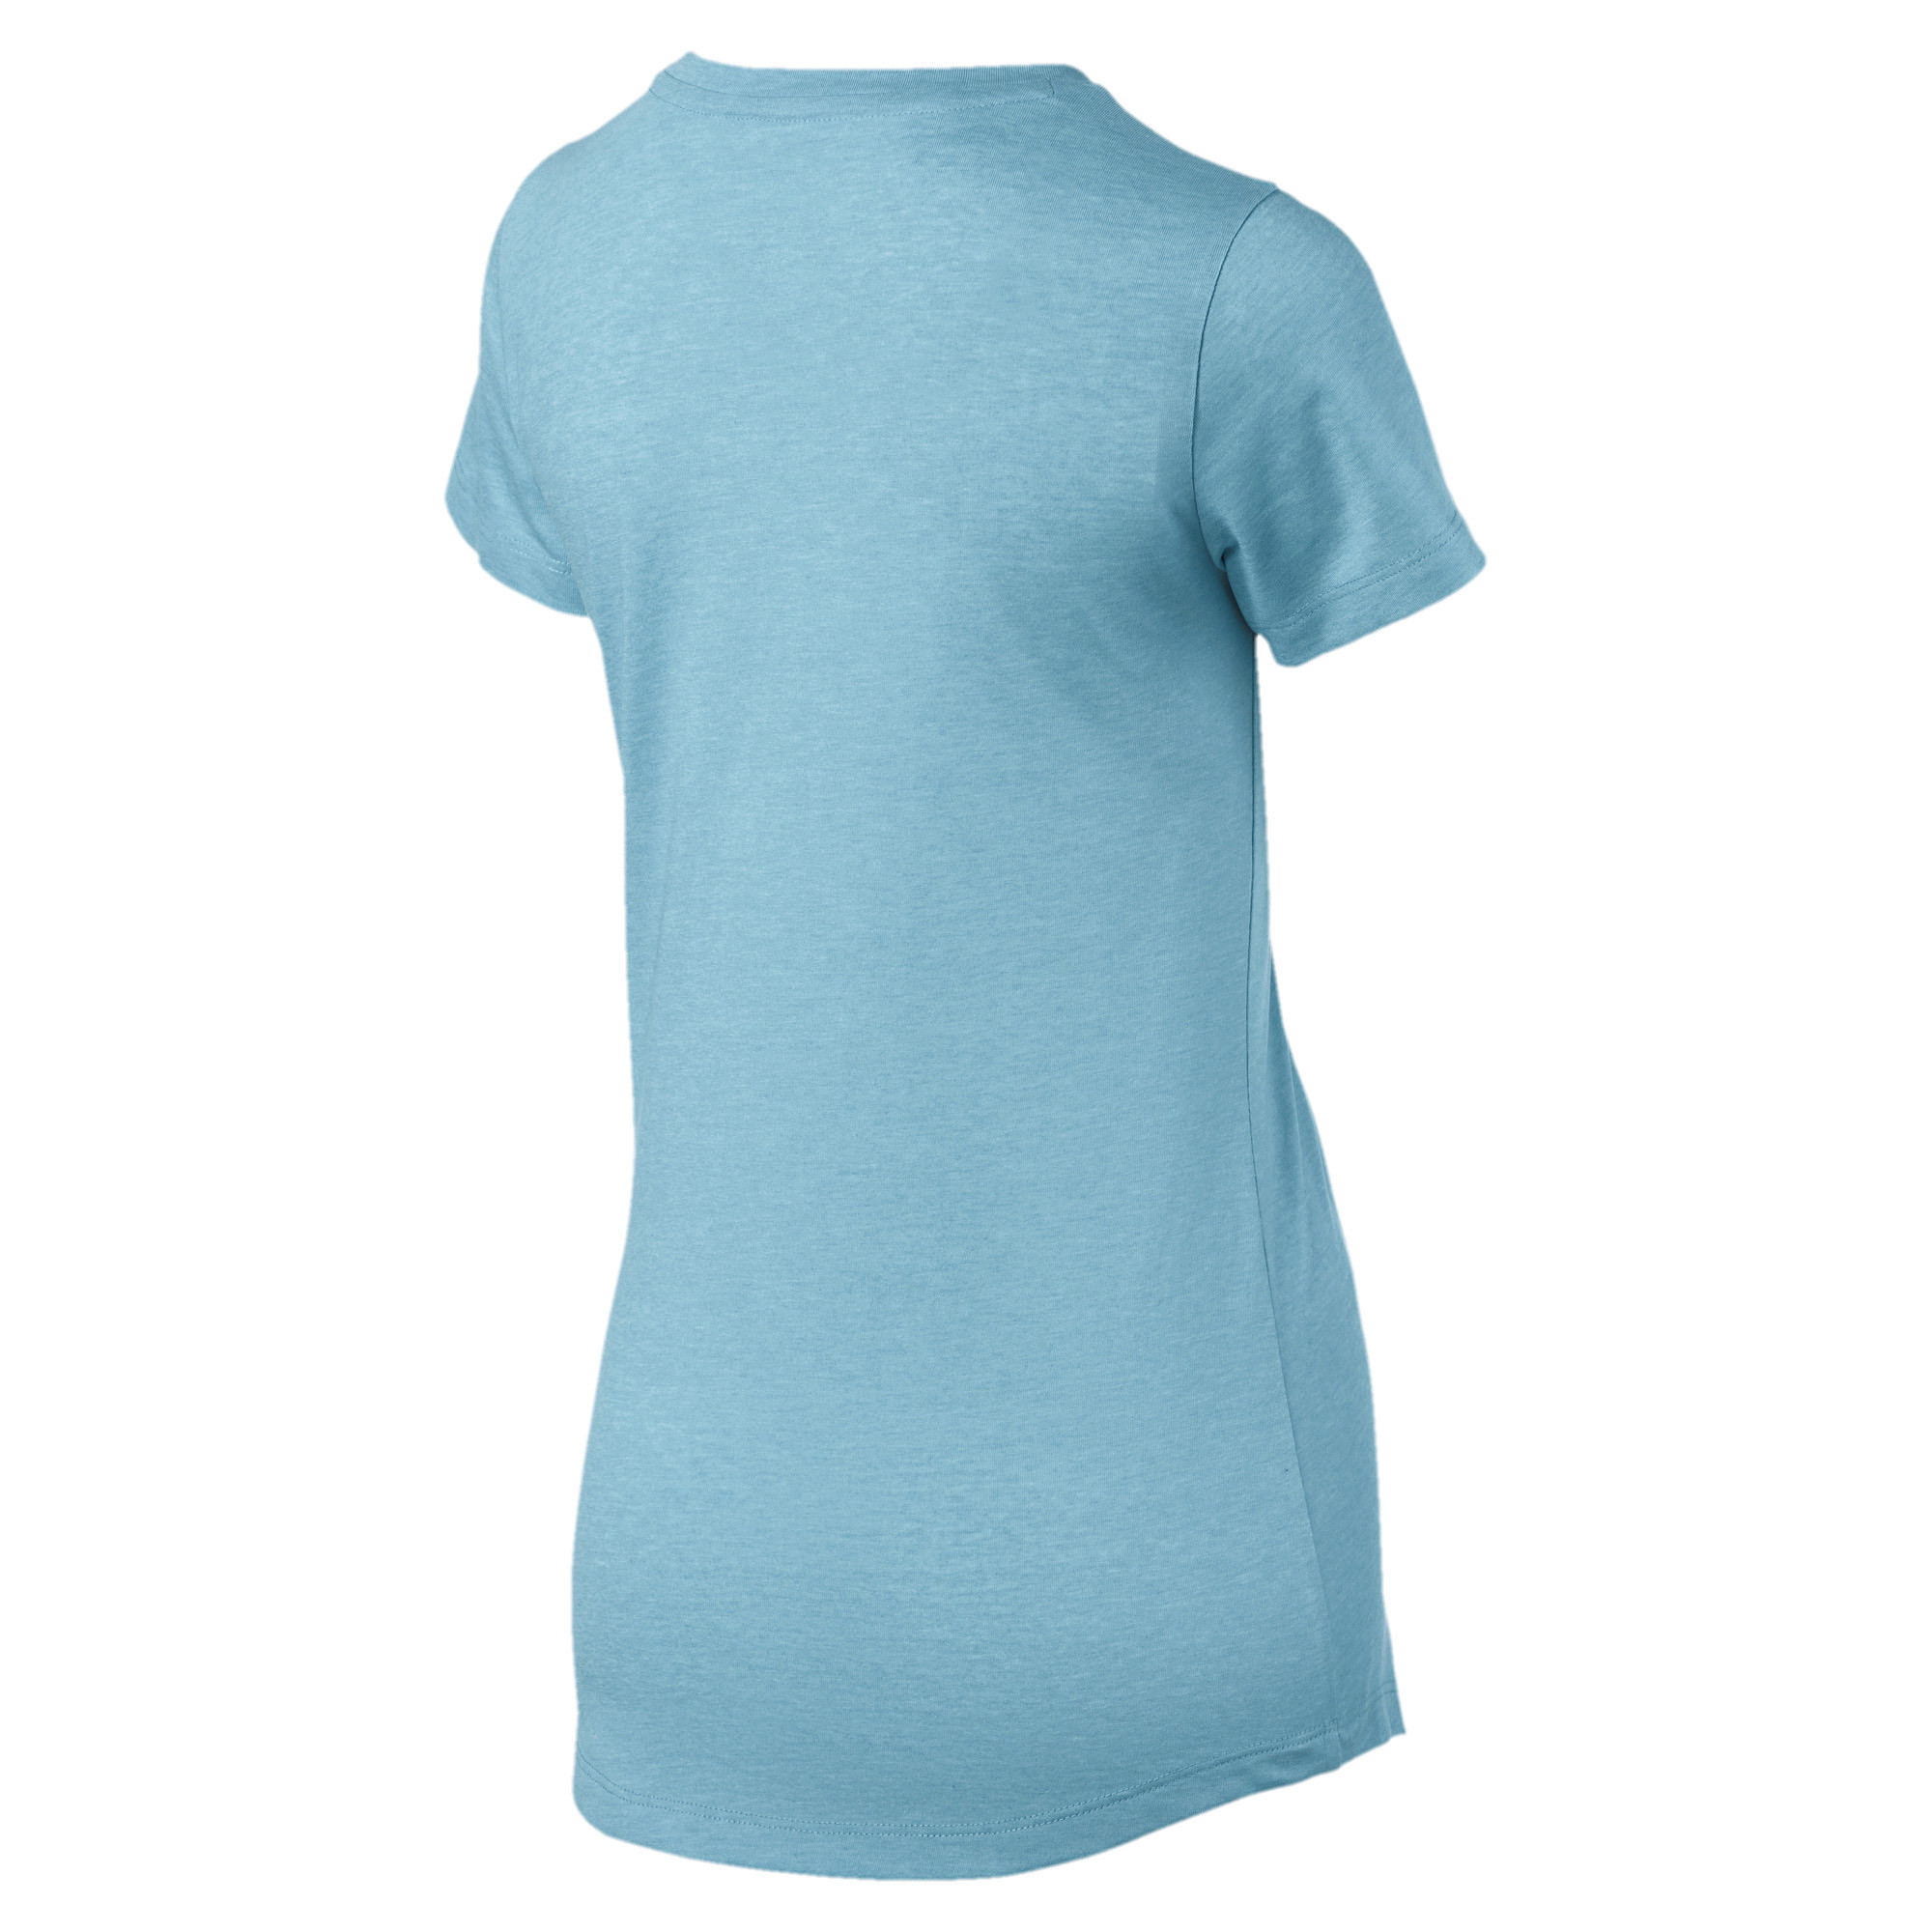 PUMA-Essentials-Women-039-s-Heather-Tee-Women-Tee-Basics thumbnail 51